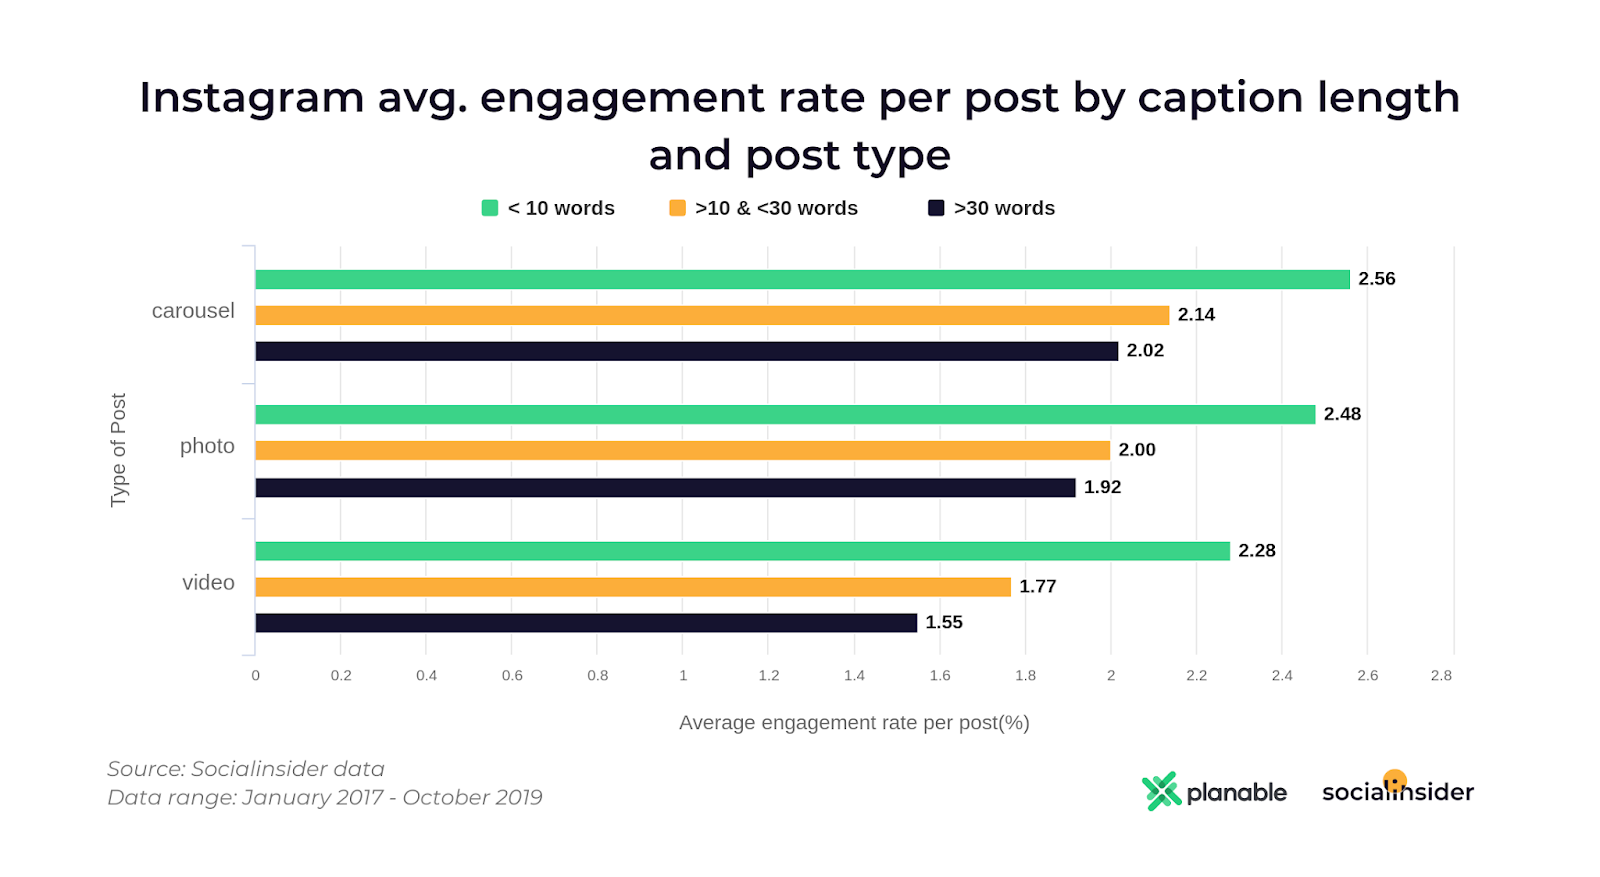 Instagram avg engagement caption length and post type